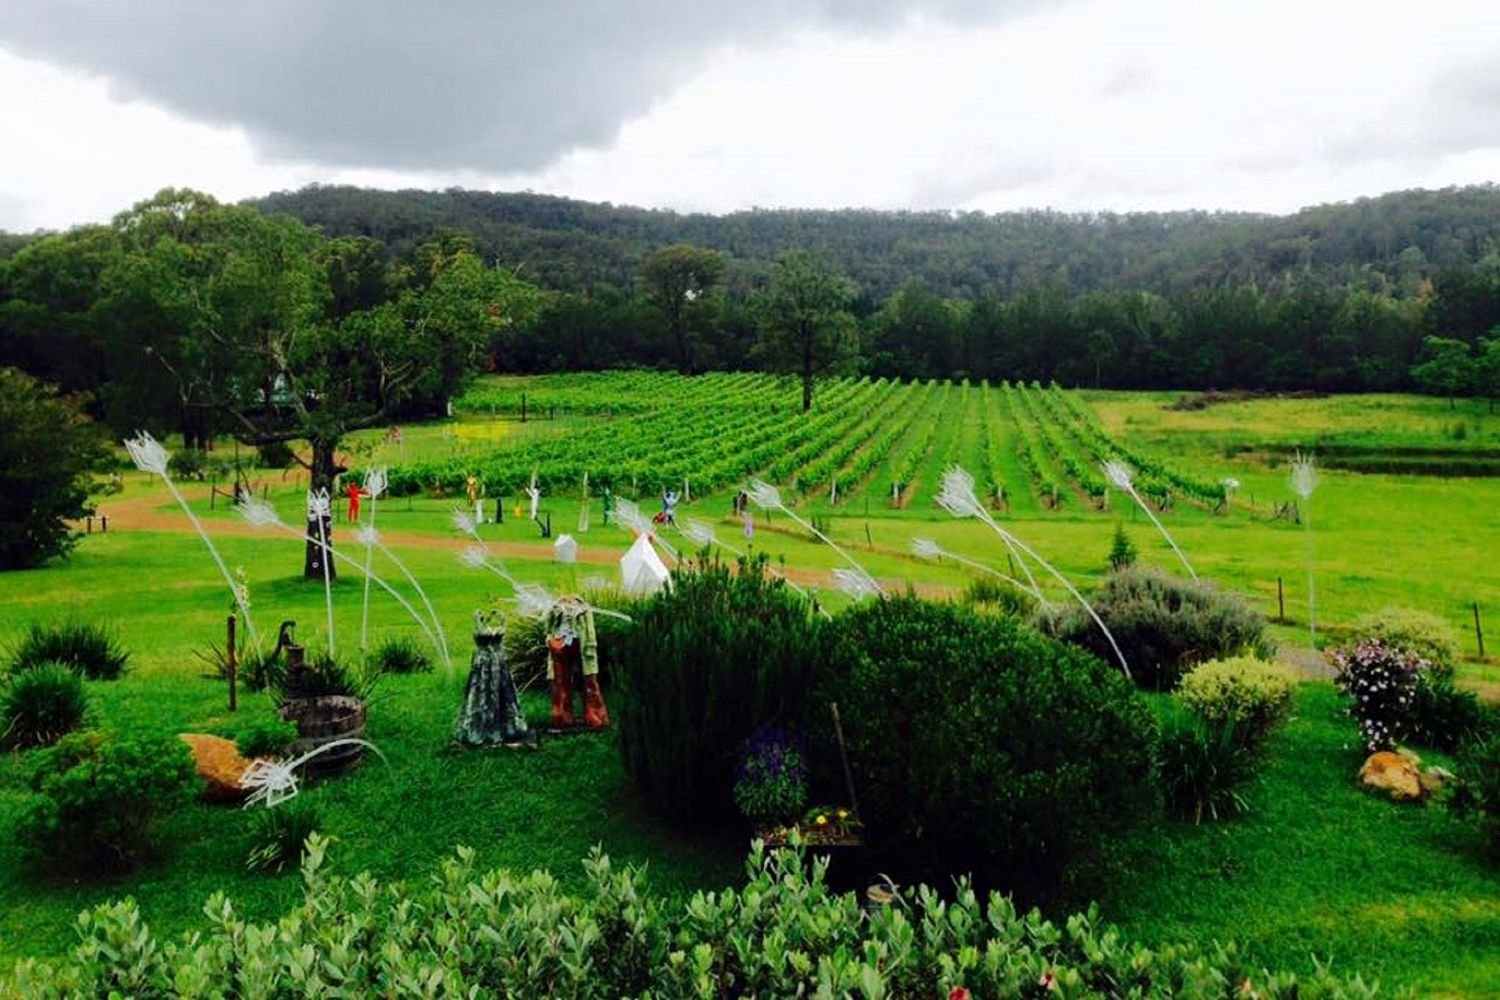 Sculptures at Wollombi Wines in Wollombi, Hunter Valley